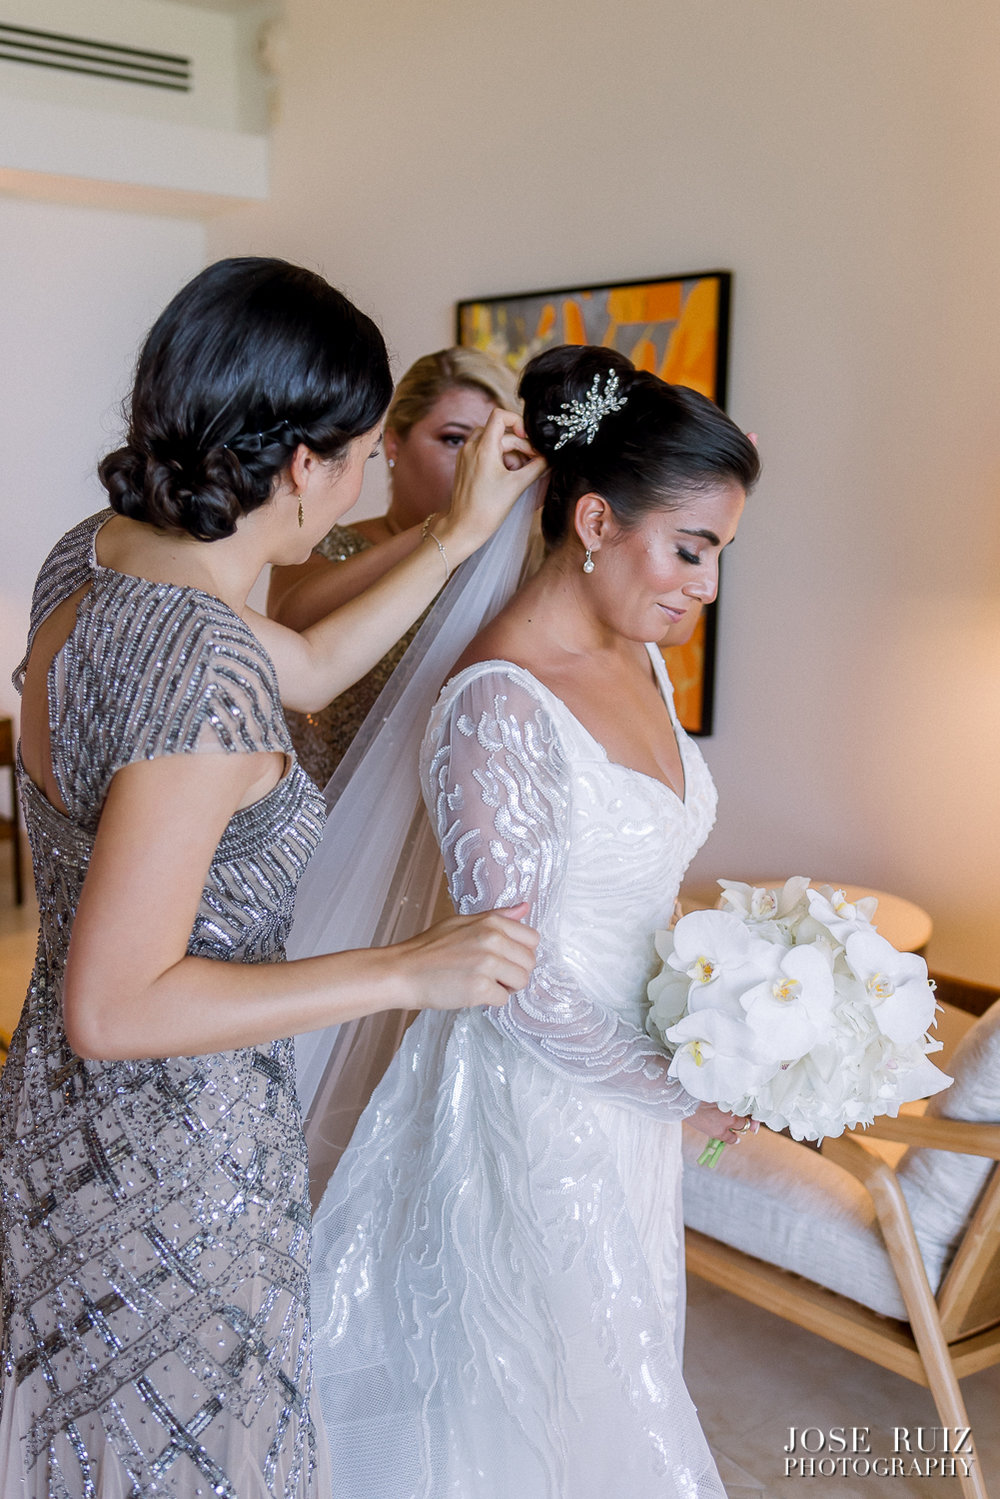 Jose Ruiz Photography- Bianca & Adam Wedding Day-0031.jpg